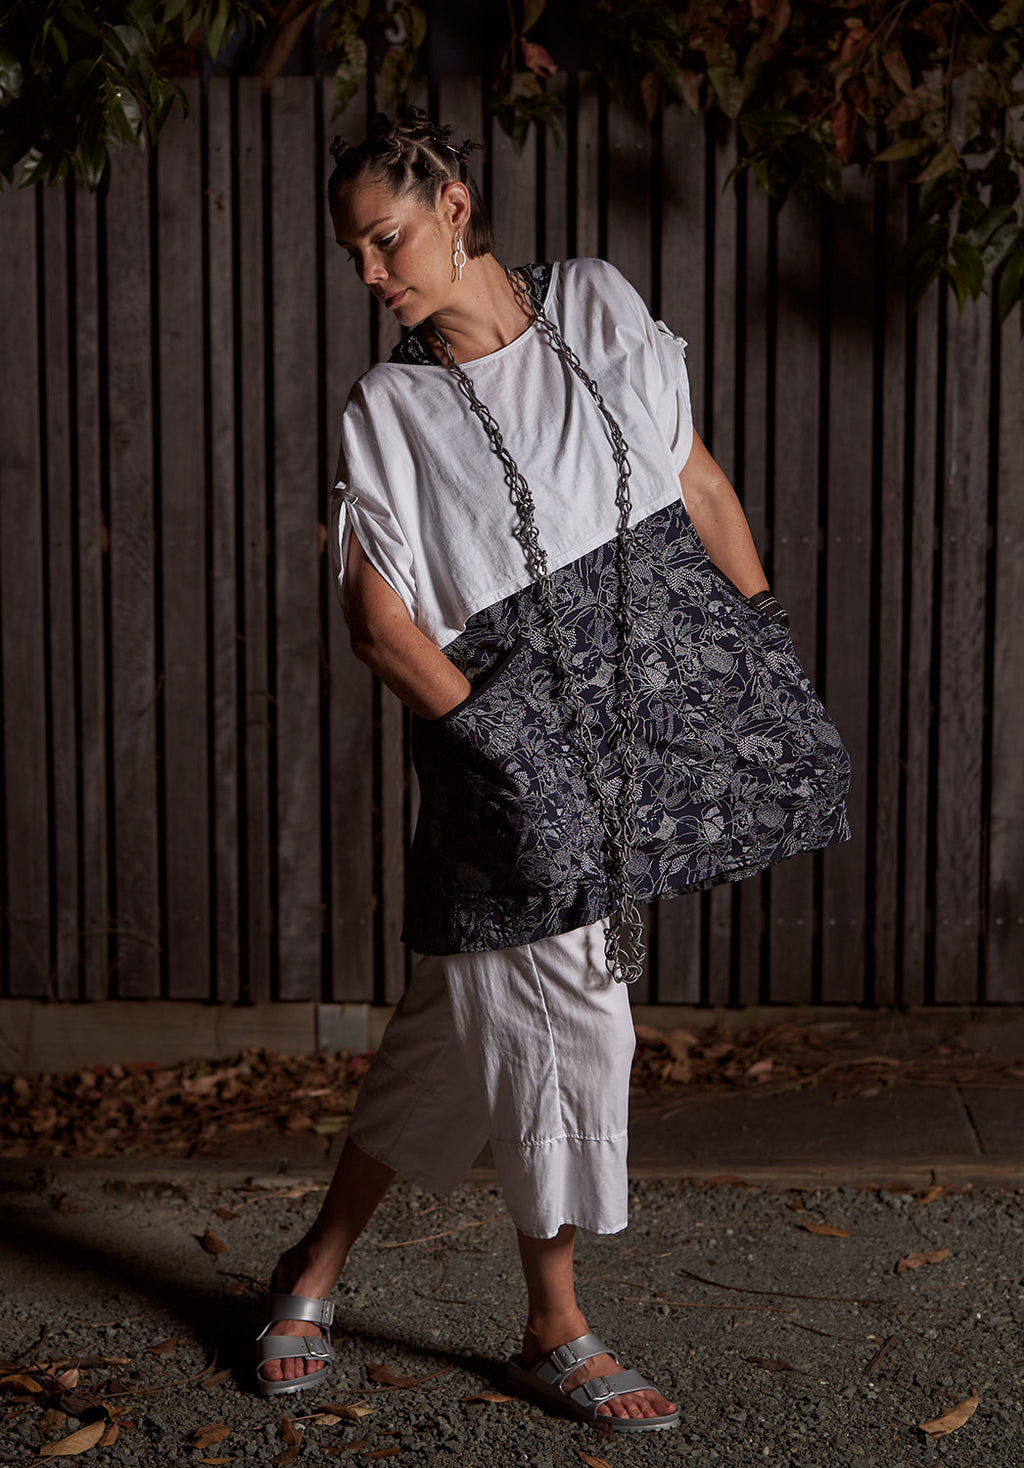 aura top australia, ethical clothing australia, store's for womens clothing, sustainable fashion designer